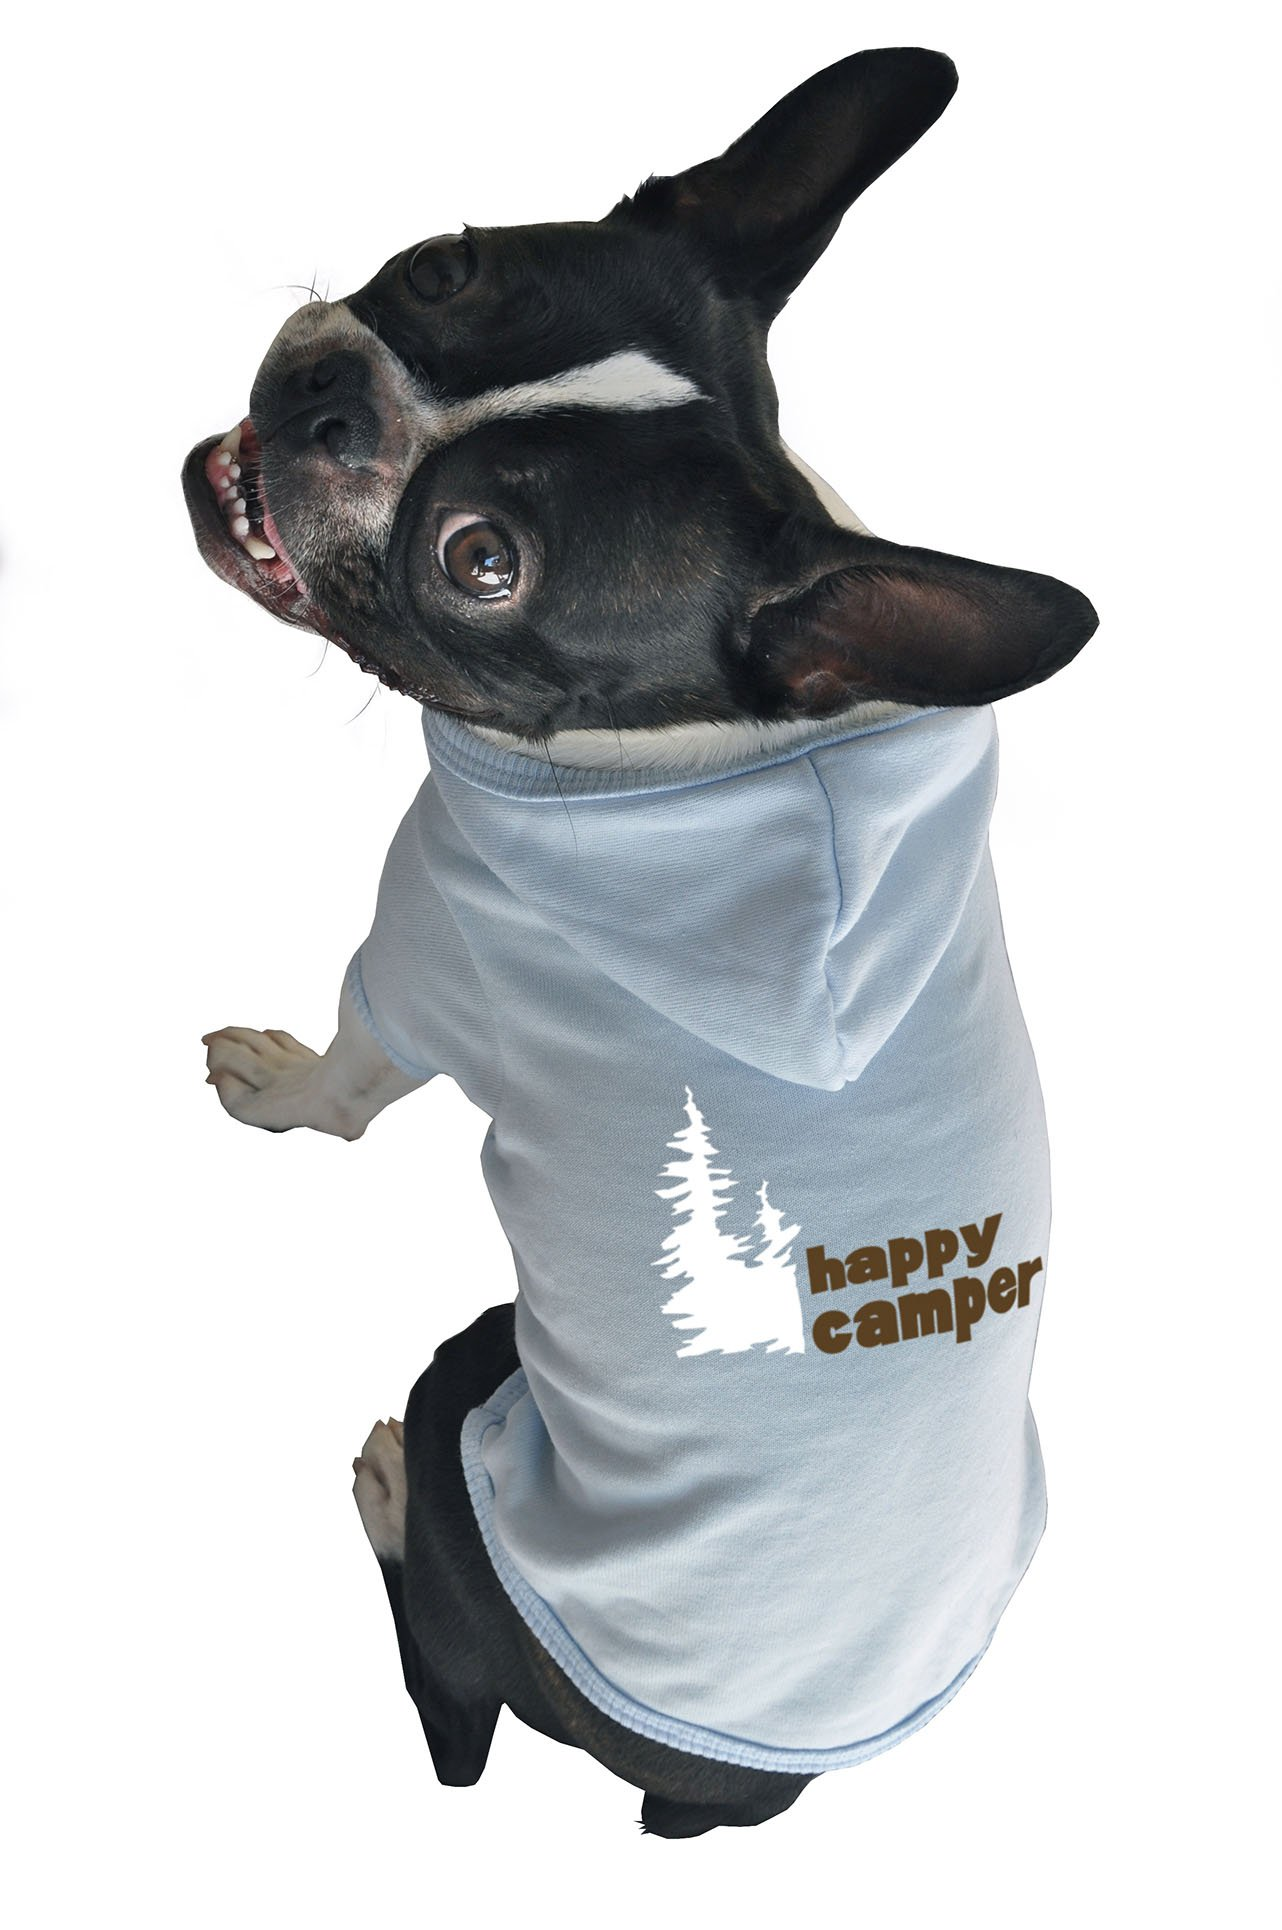 Ruff Ruff and Meow Dog Hoodie, Happy Camper, Blue, Large